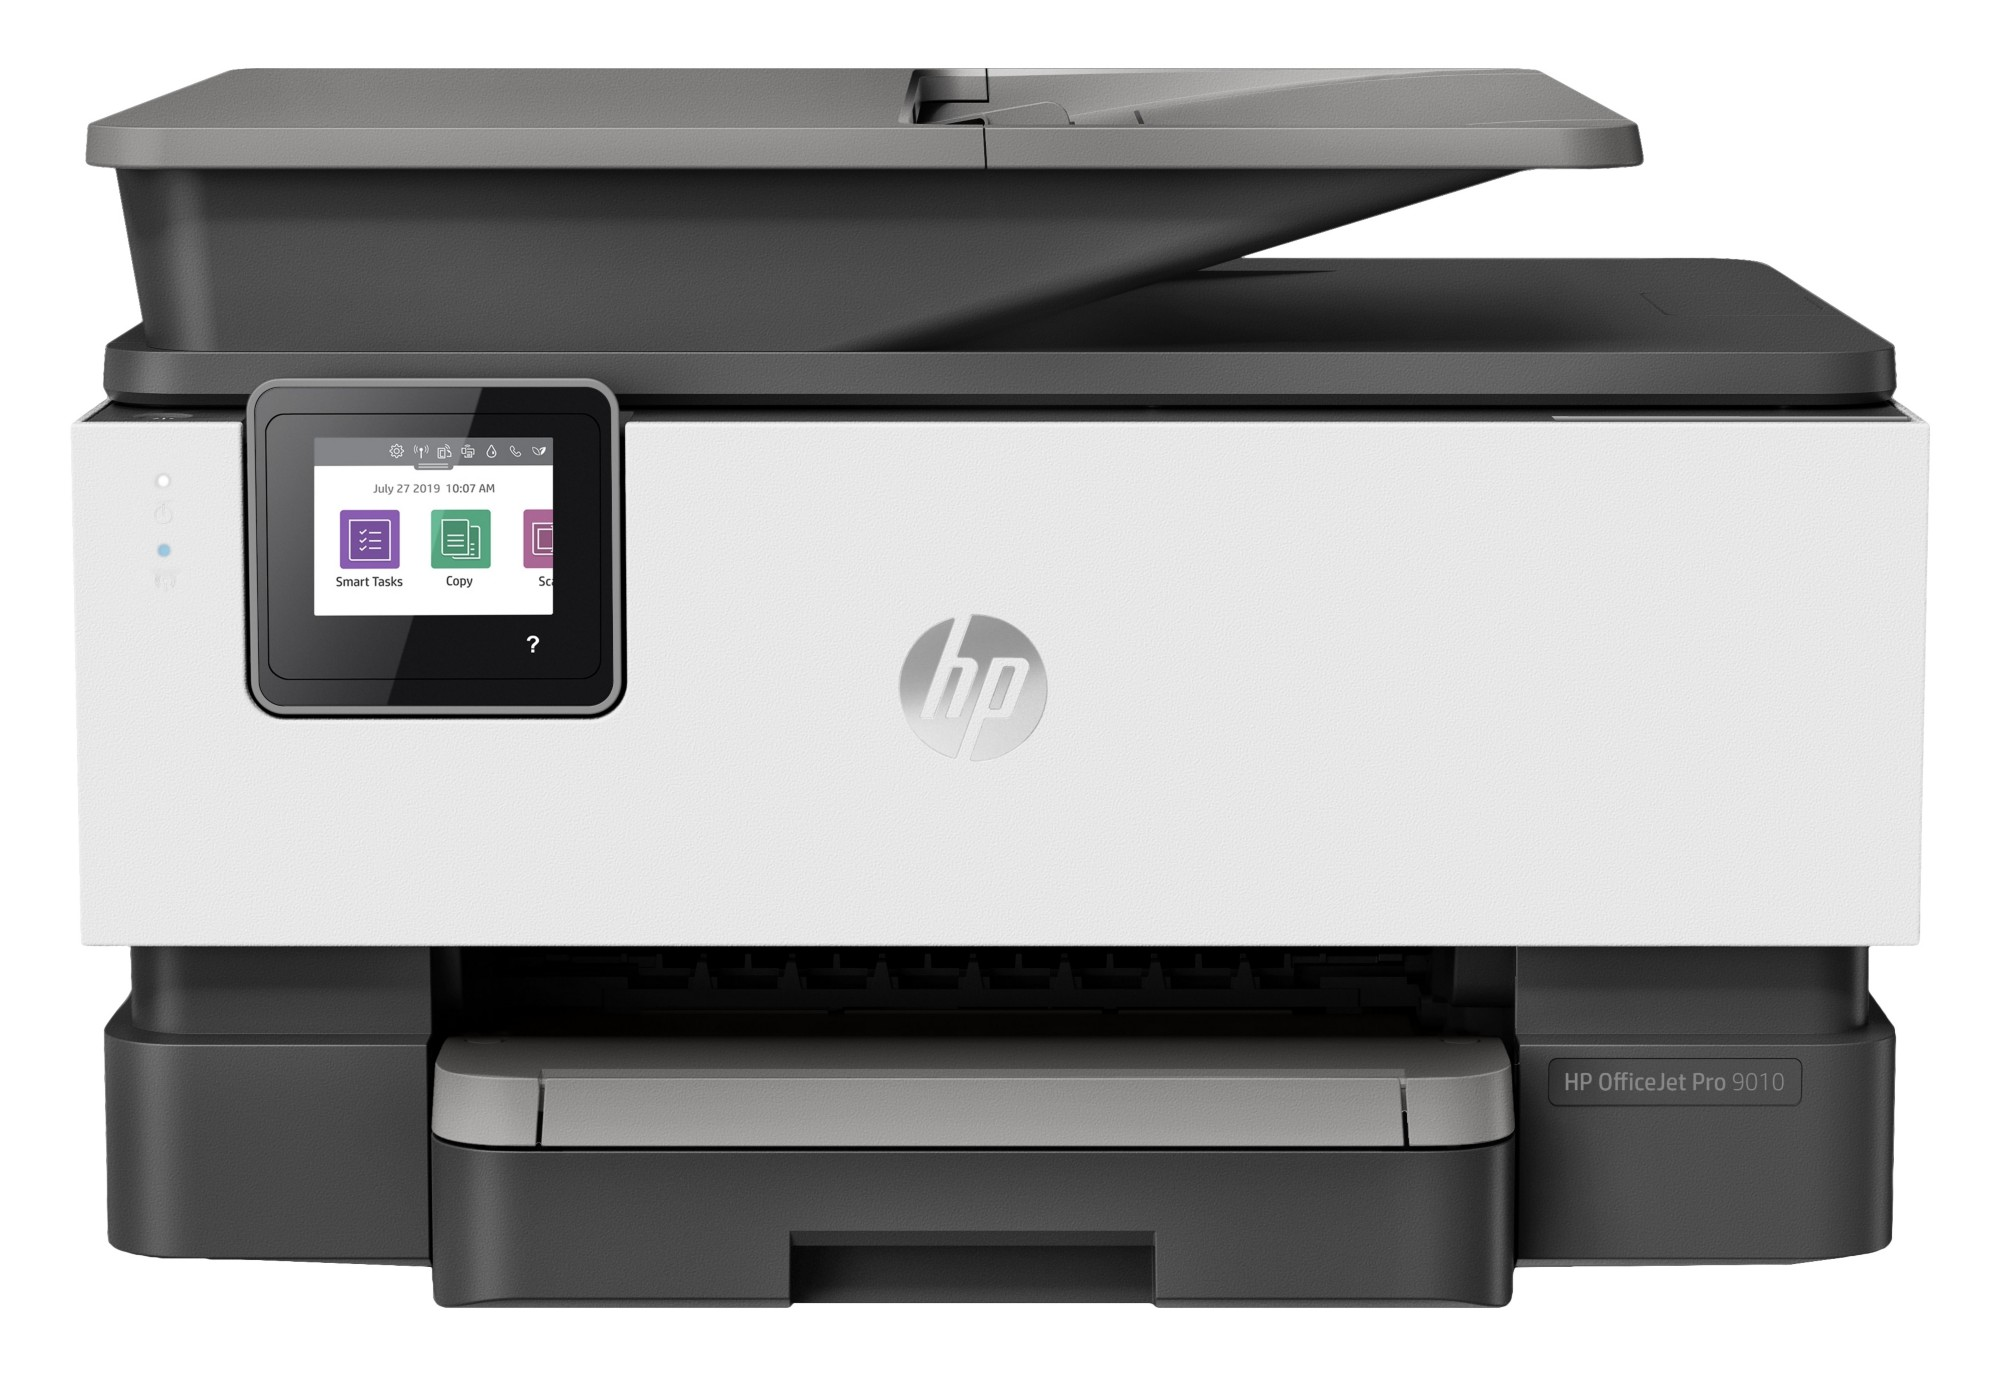 HP OfficeJet Pro 9012 All-in-one wireless printer Print,Scan,Copy from your phone, Instant Ink ready & voice activated (works with Alexa and Google As